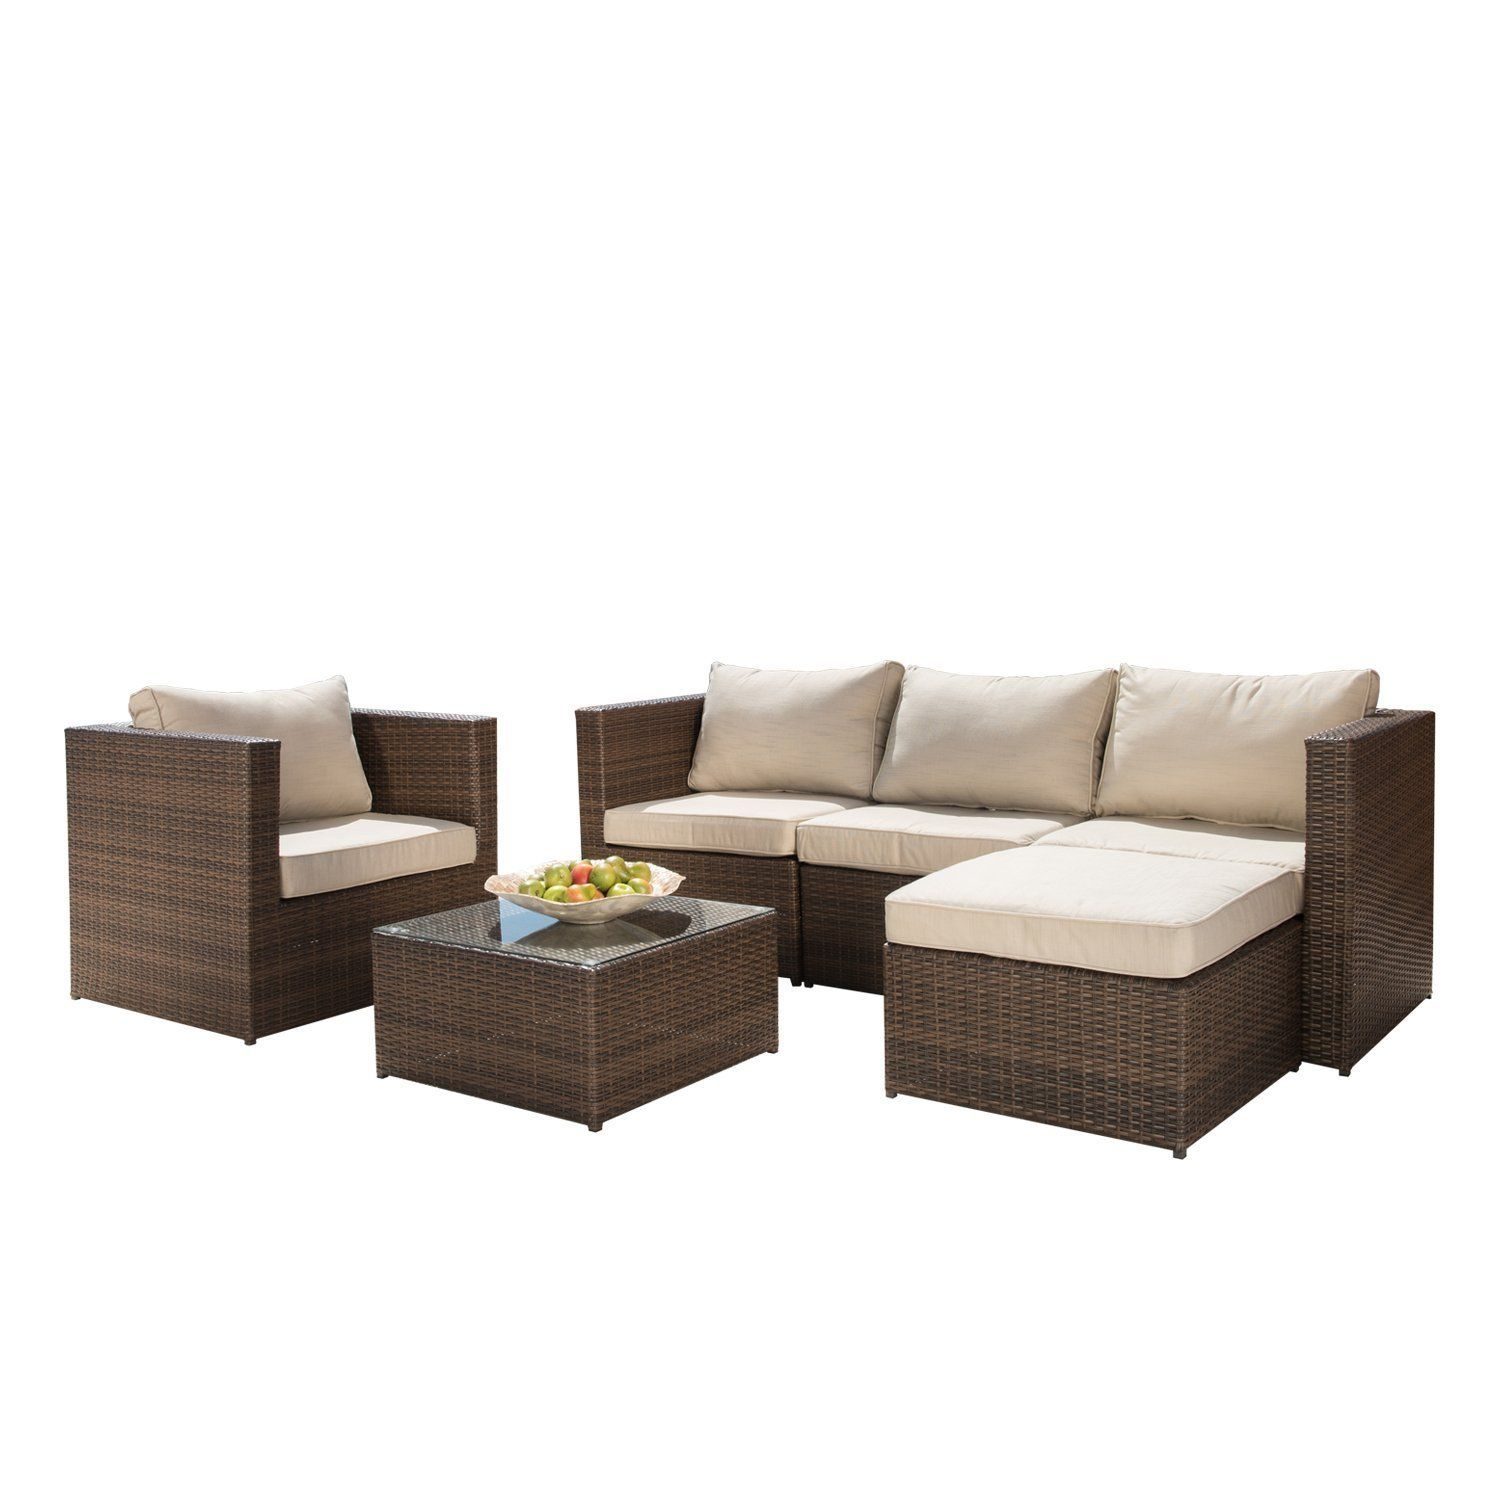 6pc Patio Sectional Sofa Set No Assembly Required Ottoman Allweather Brown By Supernova See Patio Sofa Set Sectional Furniture Sectional Patio Furniture